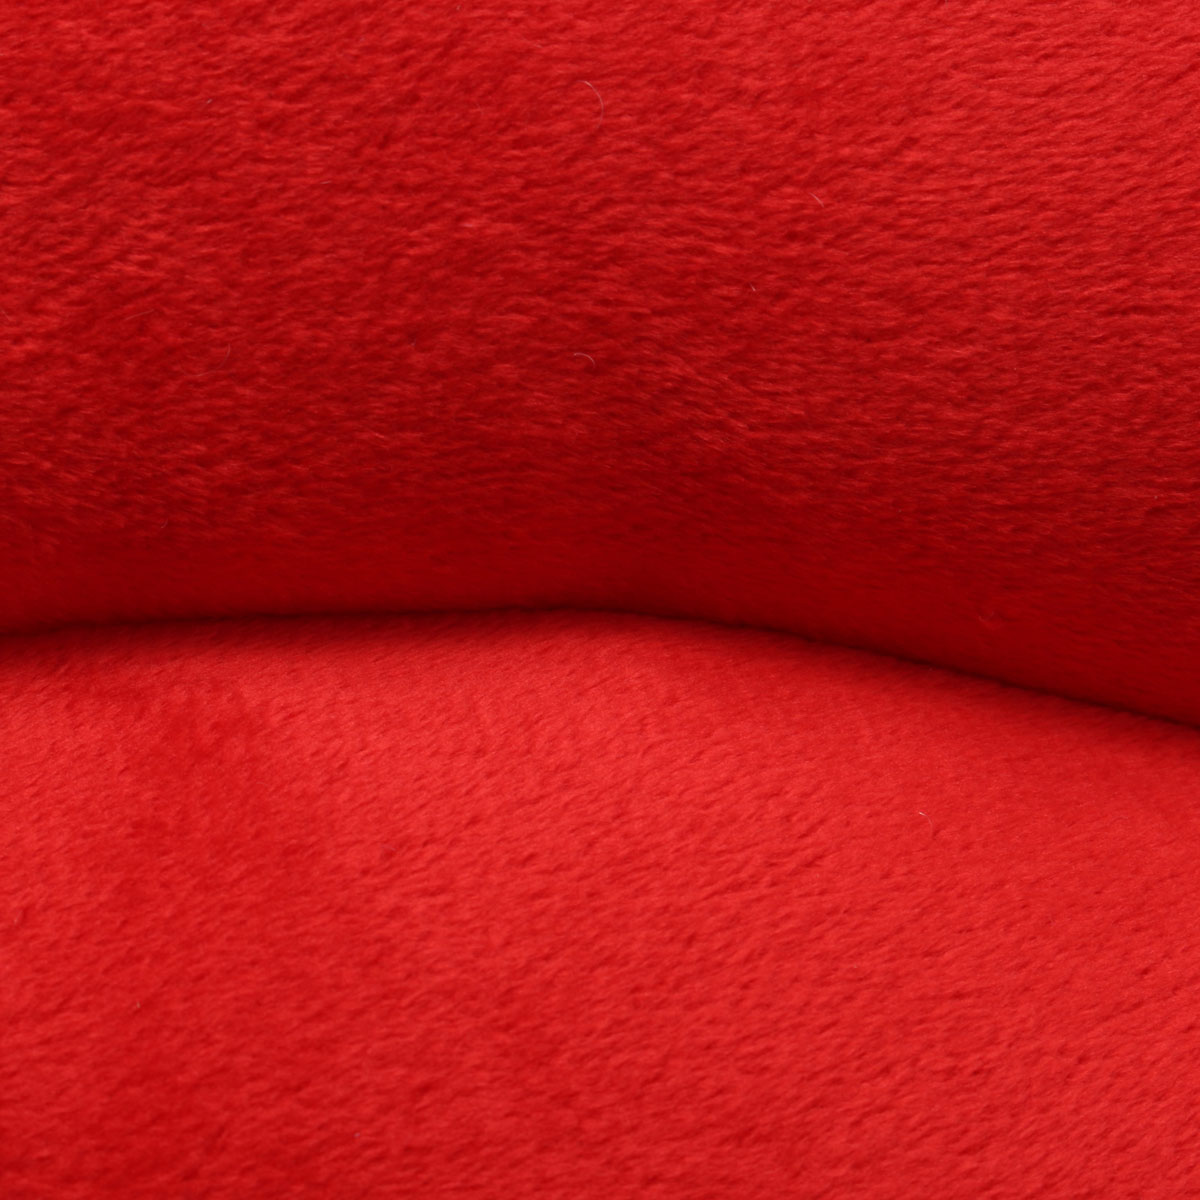 Sexy Red Pink Lip Plush Bolster Stuffed Toy Cover Sofa Decoration